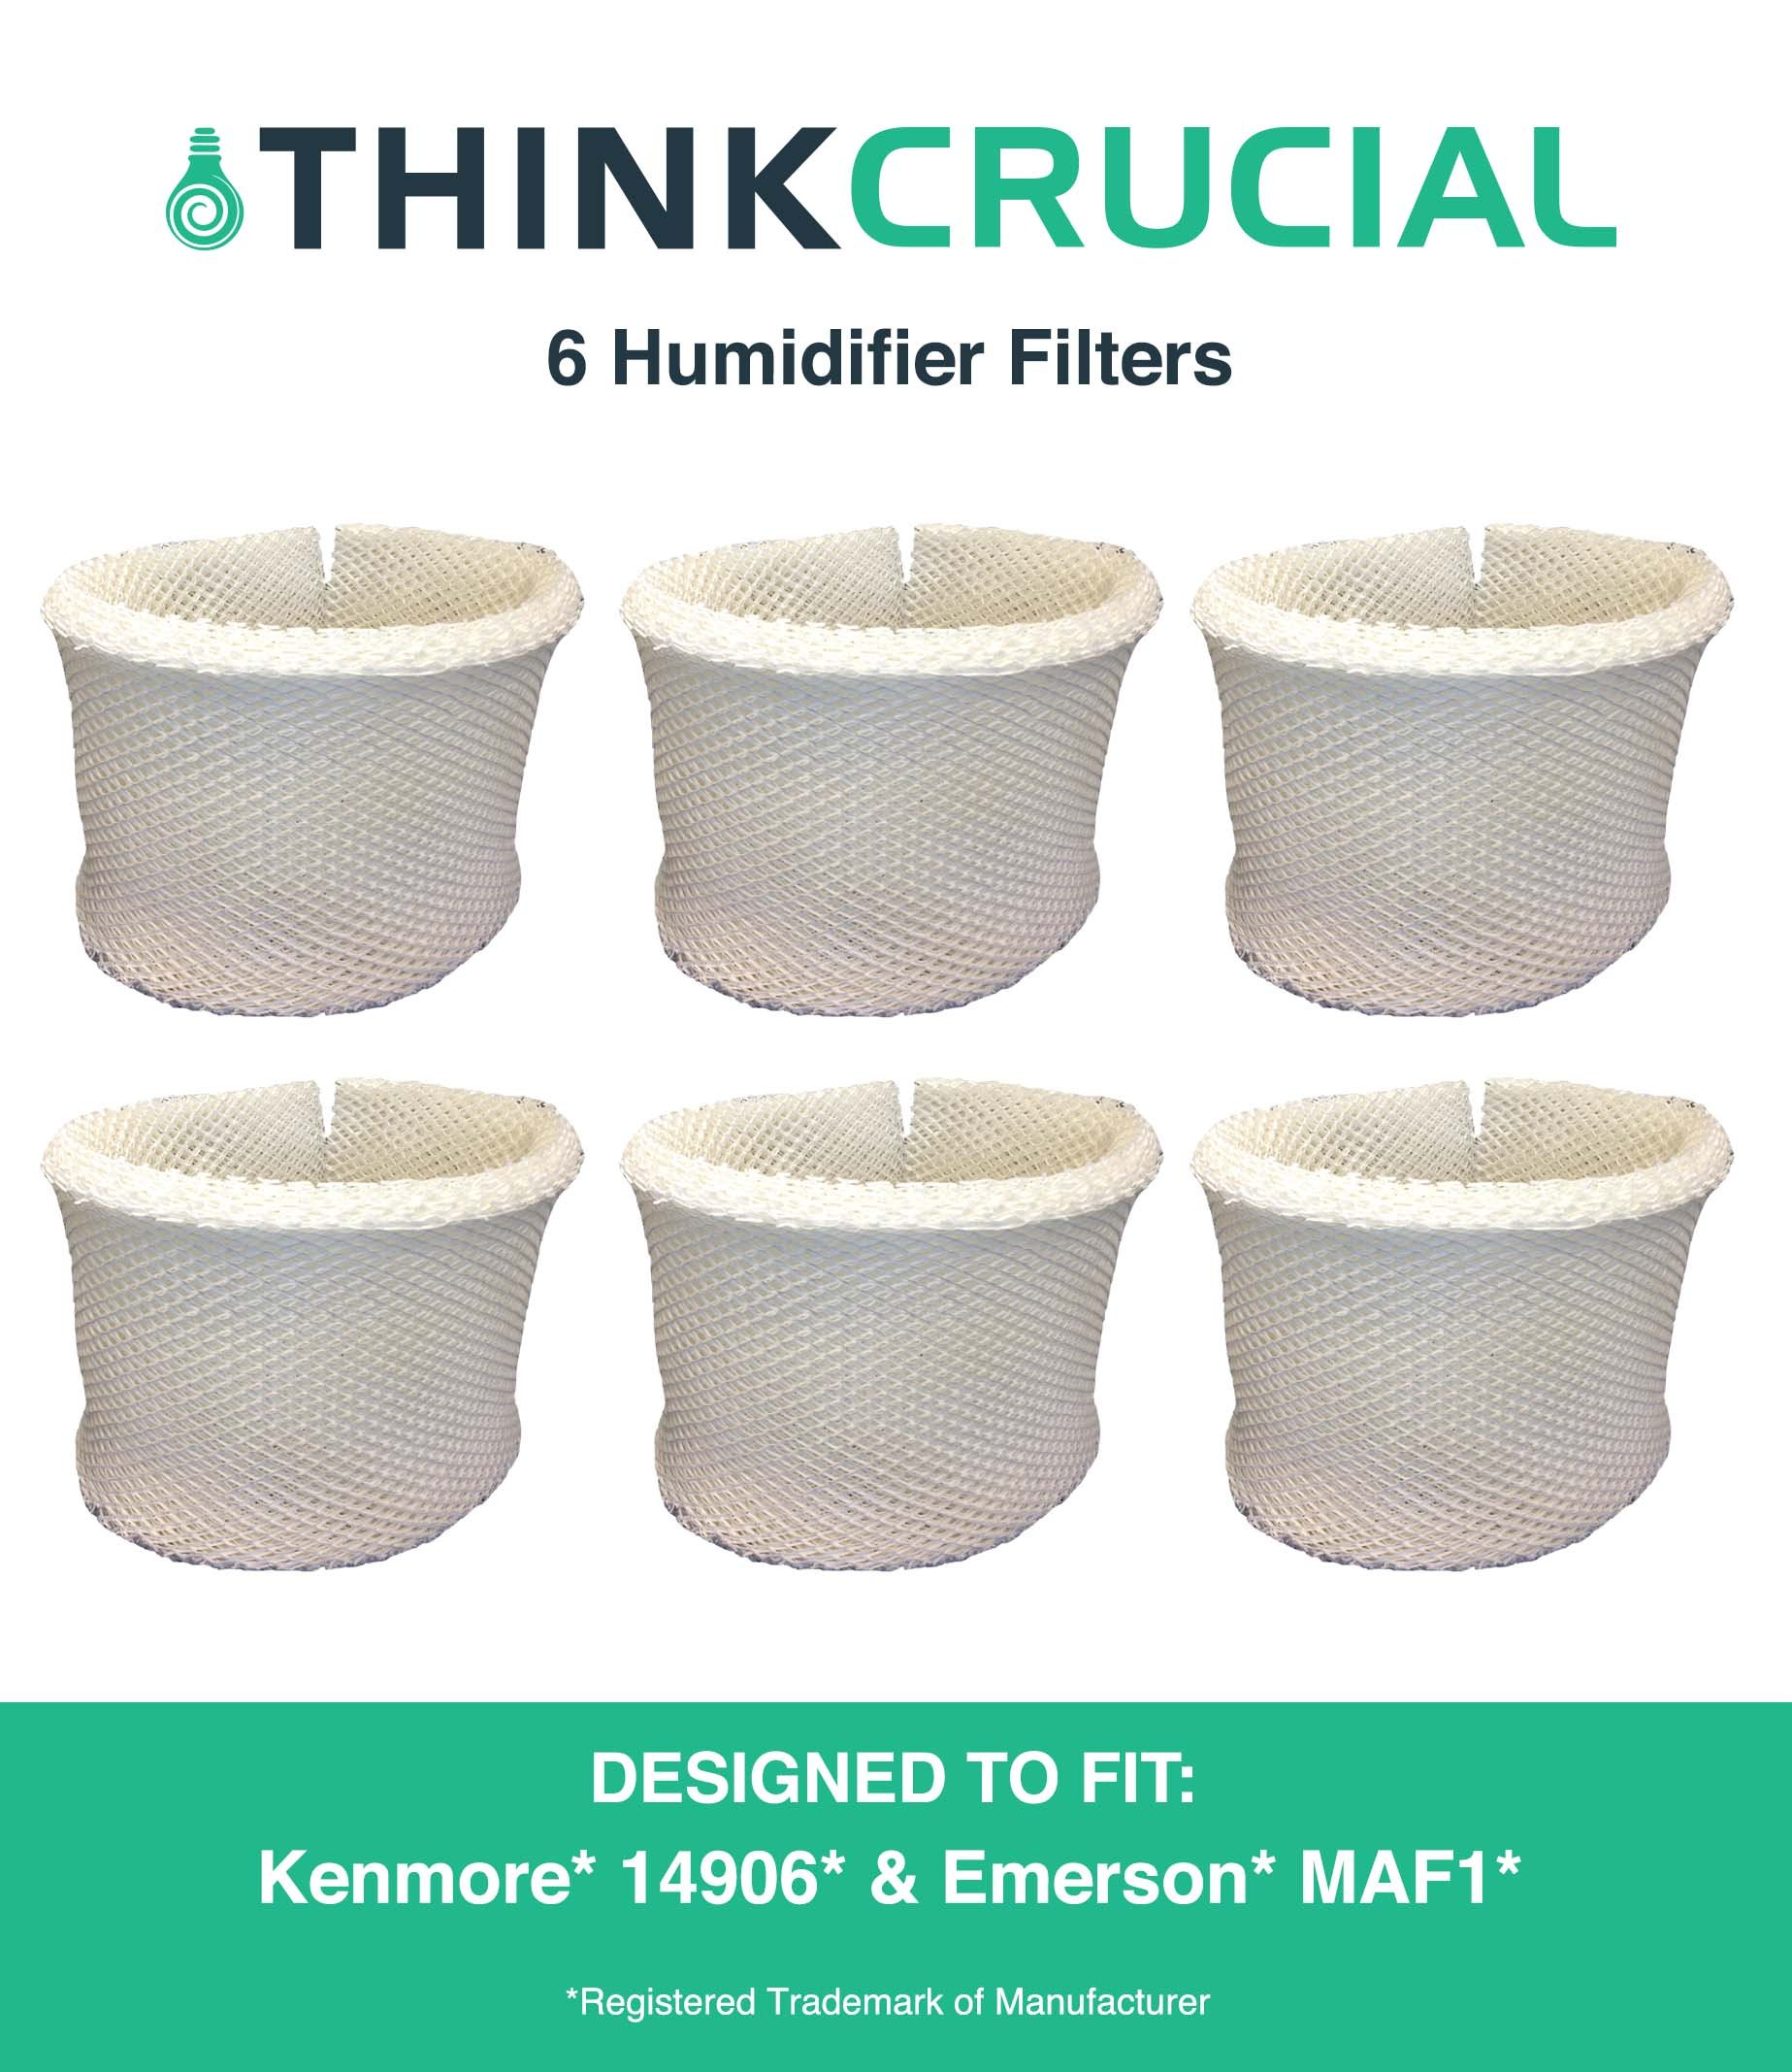 Think Crucial 6 Replacements for Kenmore 14906 EF1 & Emerson MAF1 Humidifier Wick Filter Fits 14410, 14411, 14906, 15412, 29979, 29980, 29981, 29982, 144105, 144106, Compatible With Part # 42-14906 by Crucial Air